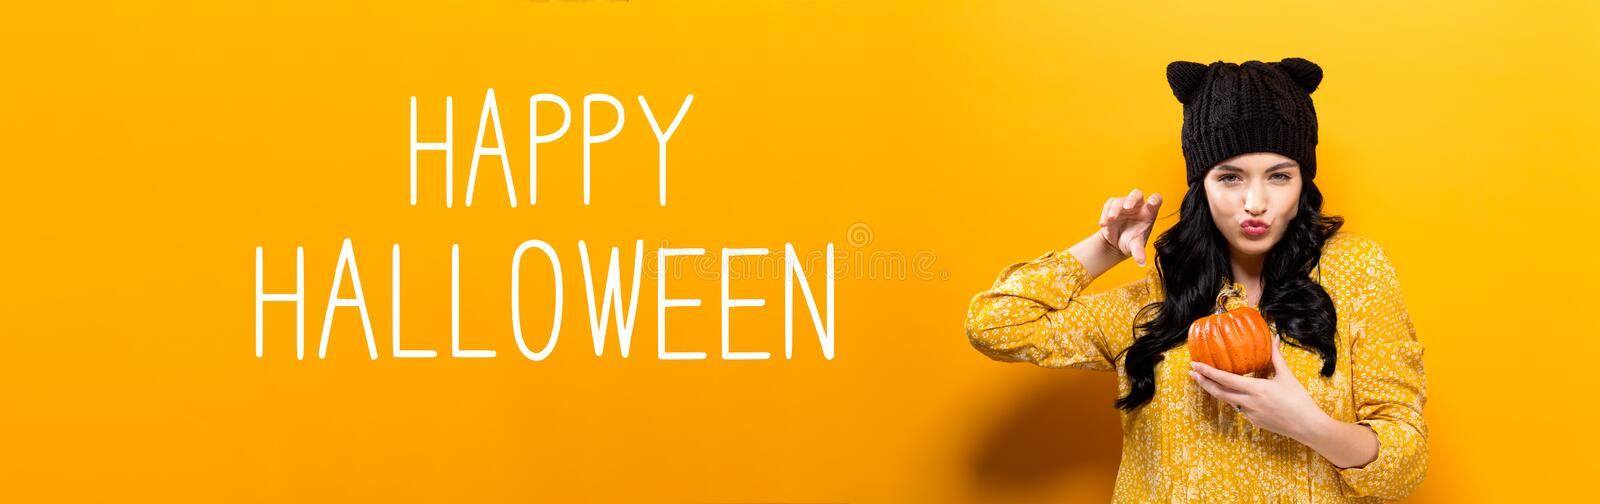 Happy Halloween with woman holding a pumpkin. Happy Halloween with young woman holding a pumpkin royalty free stock image